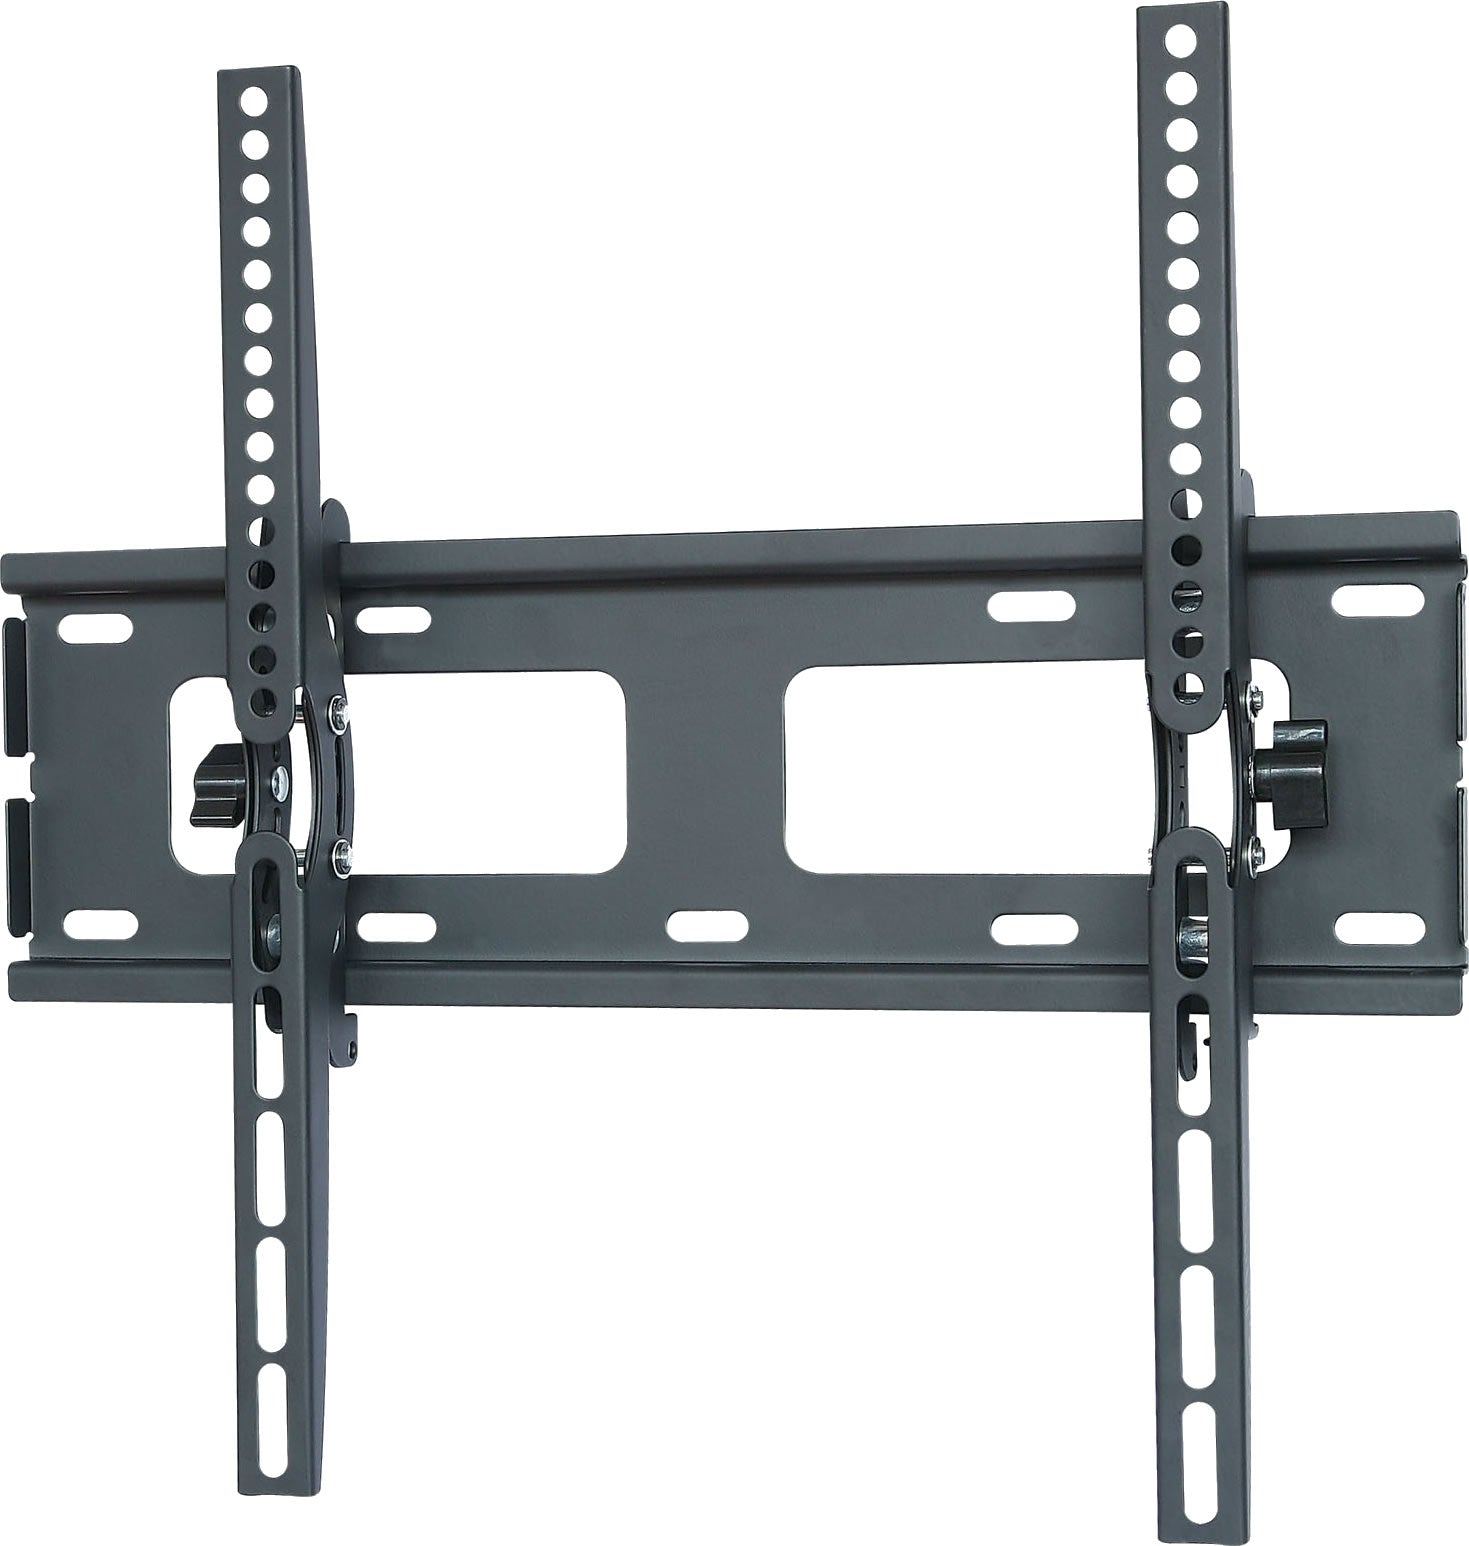 64-1131M Tilt LCD LED TV / Monitor Wall Mount Bracket for 23-40 inches TVs